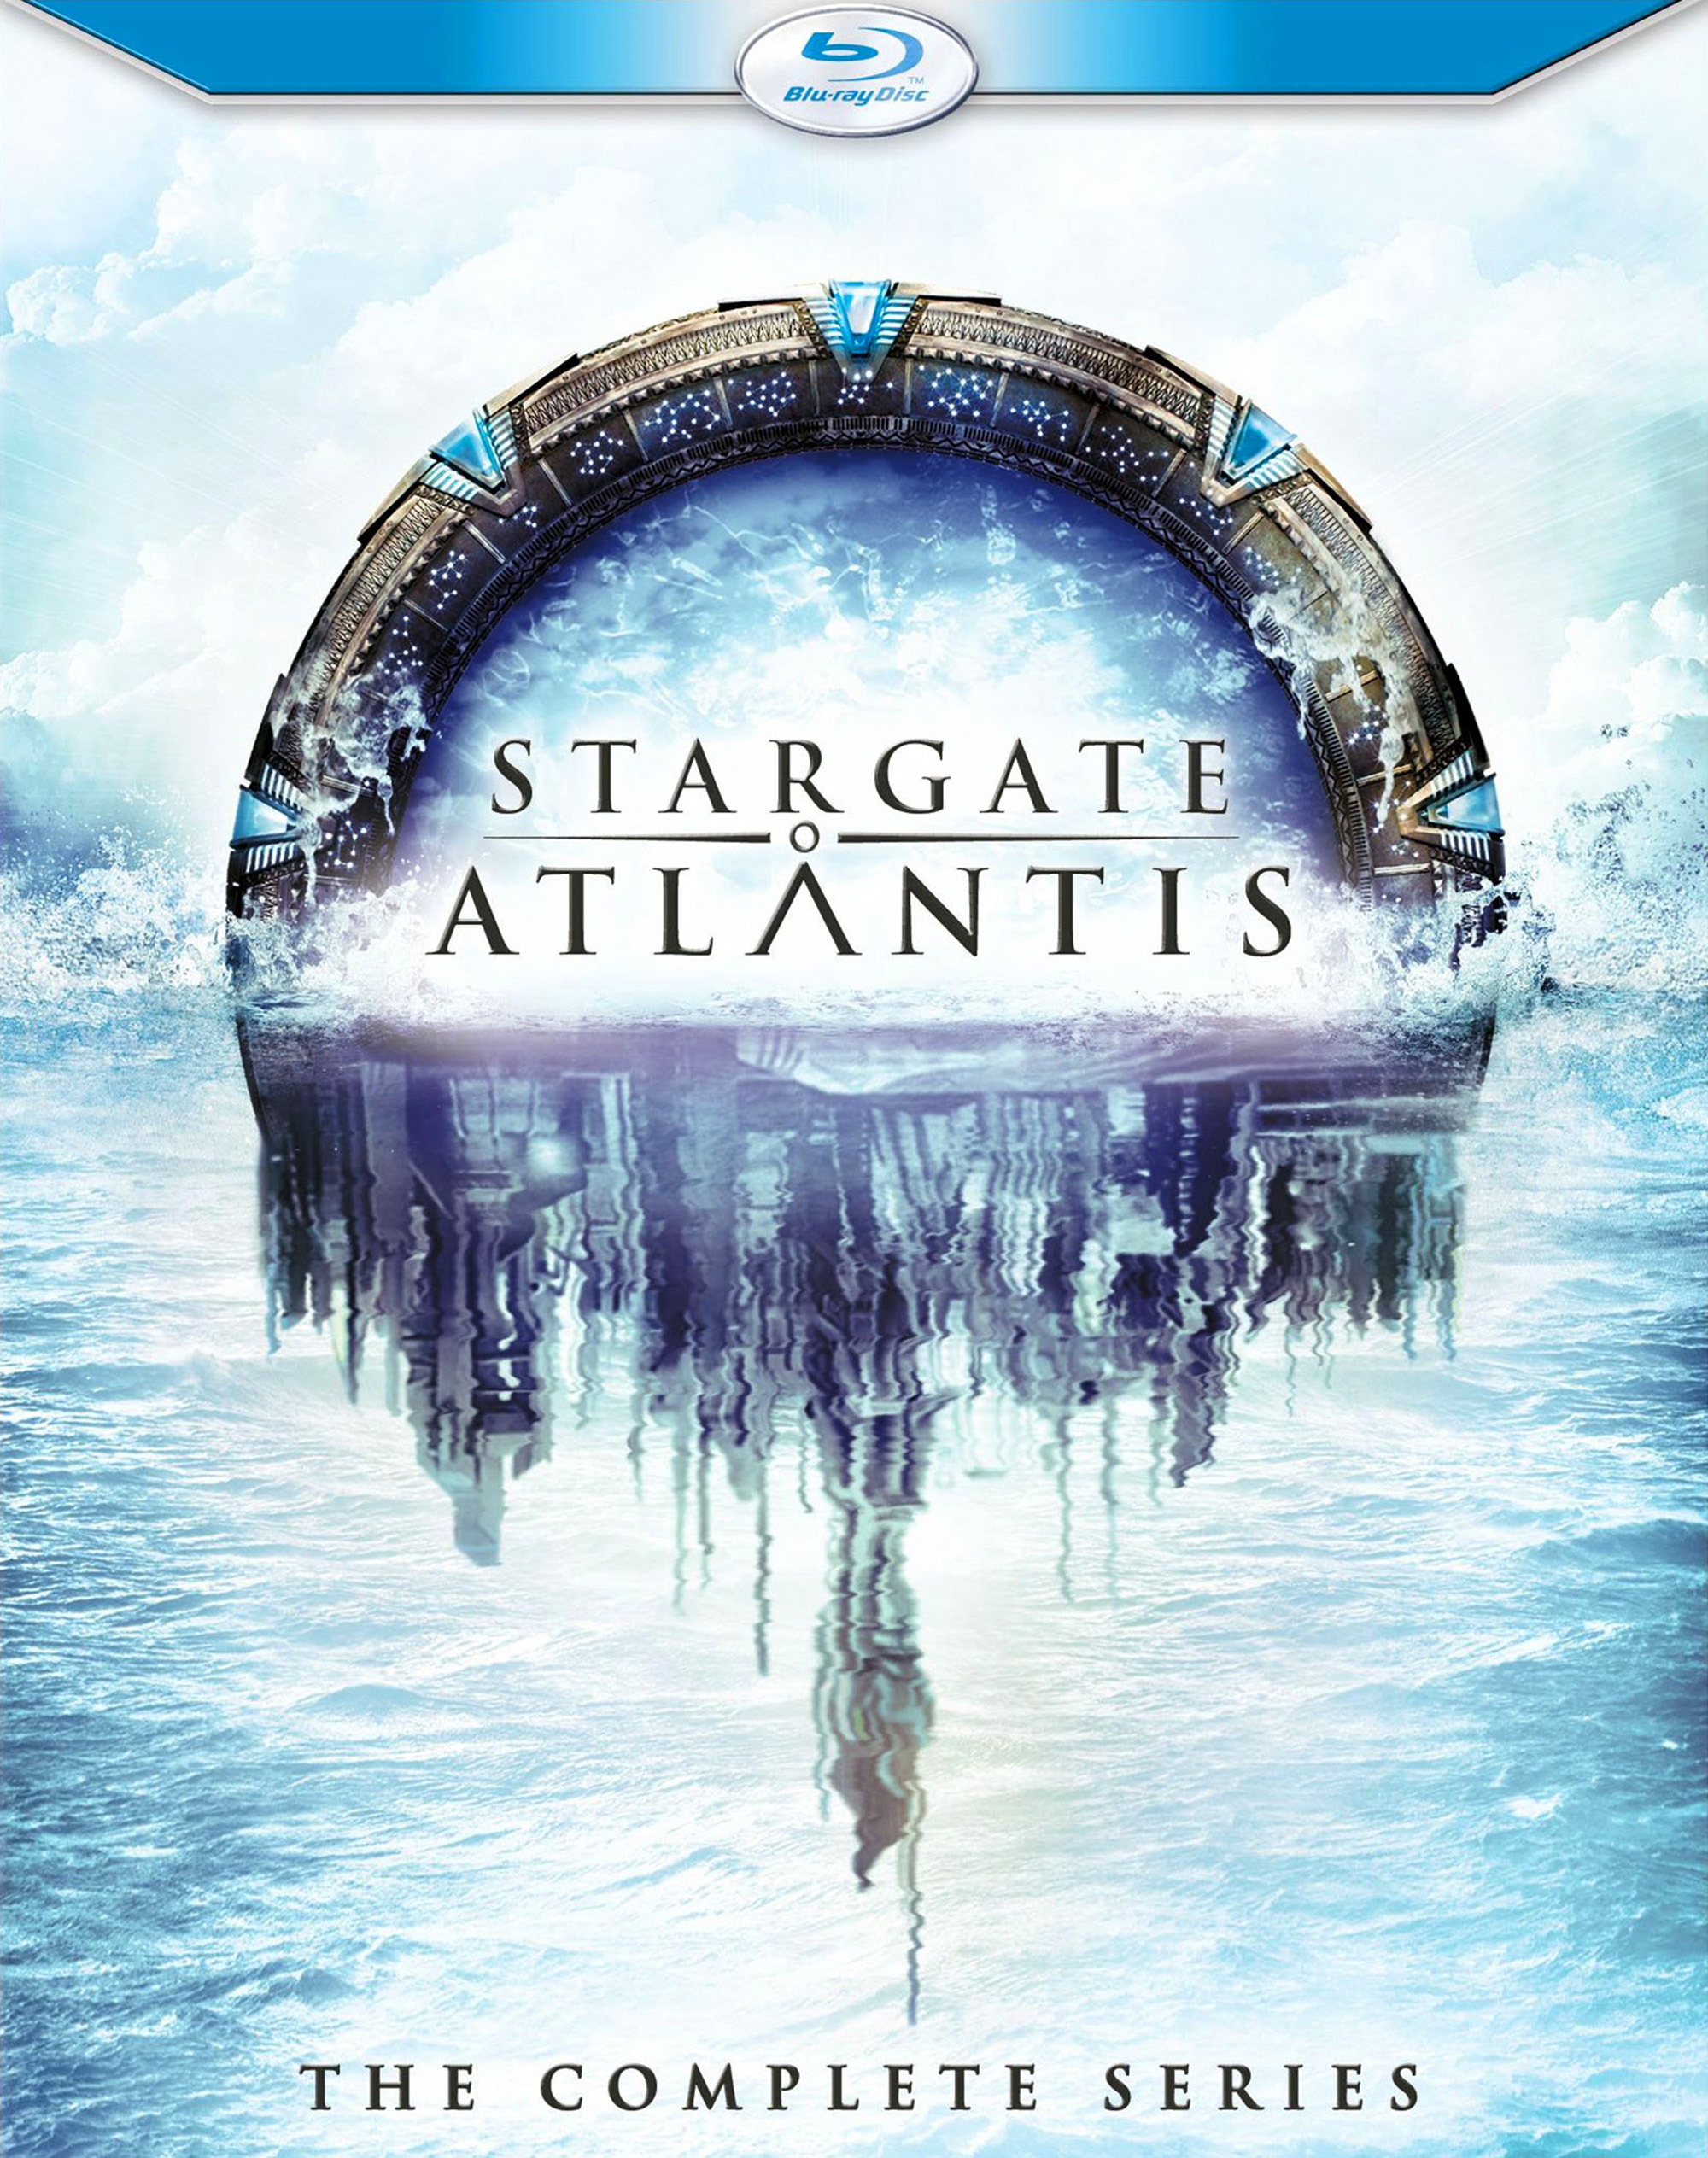 Stargate Atlantis Episodenguide